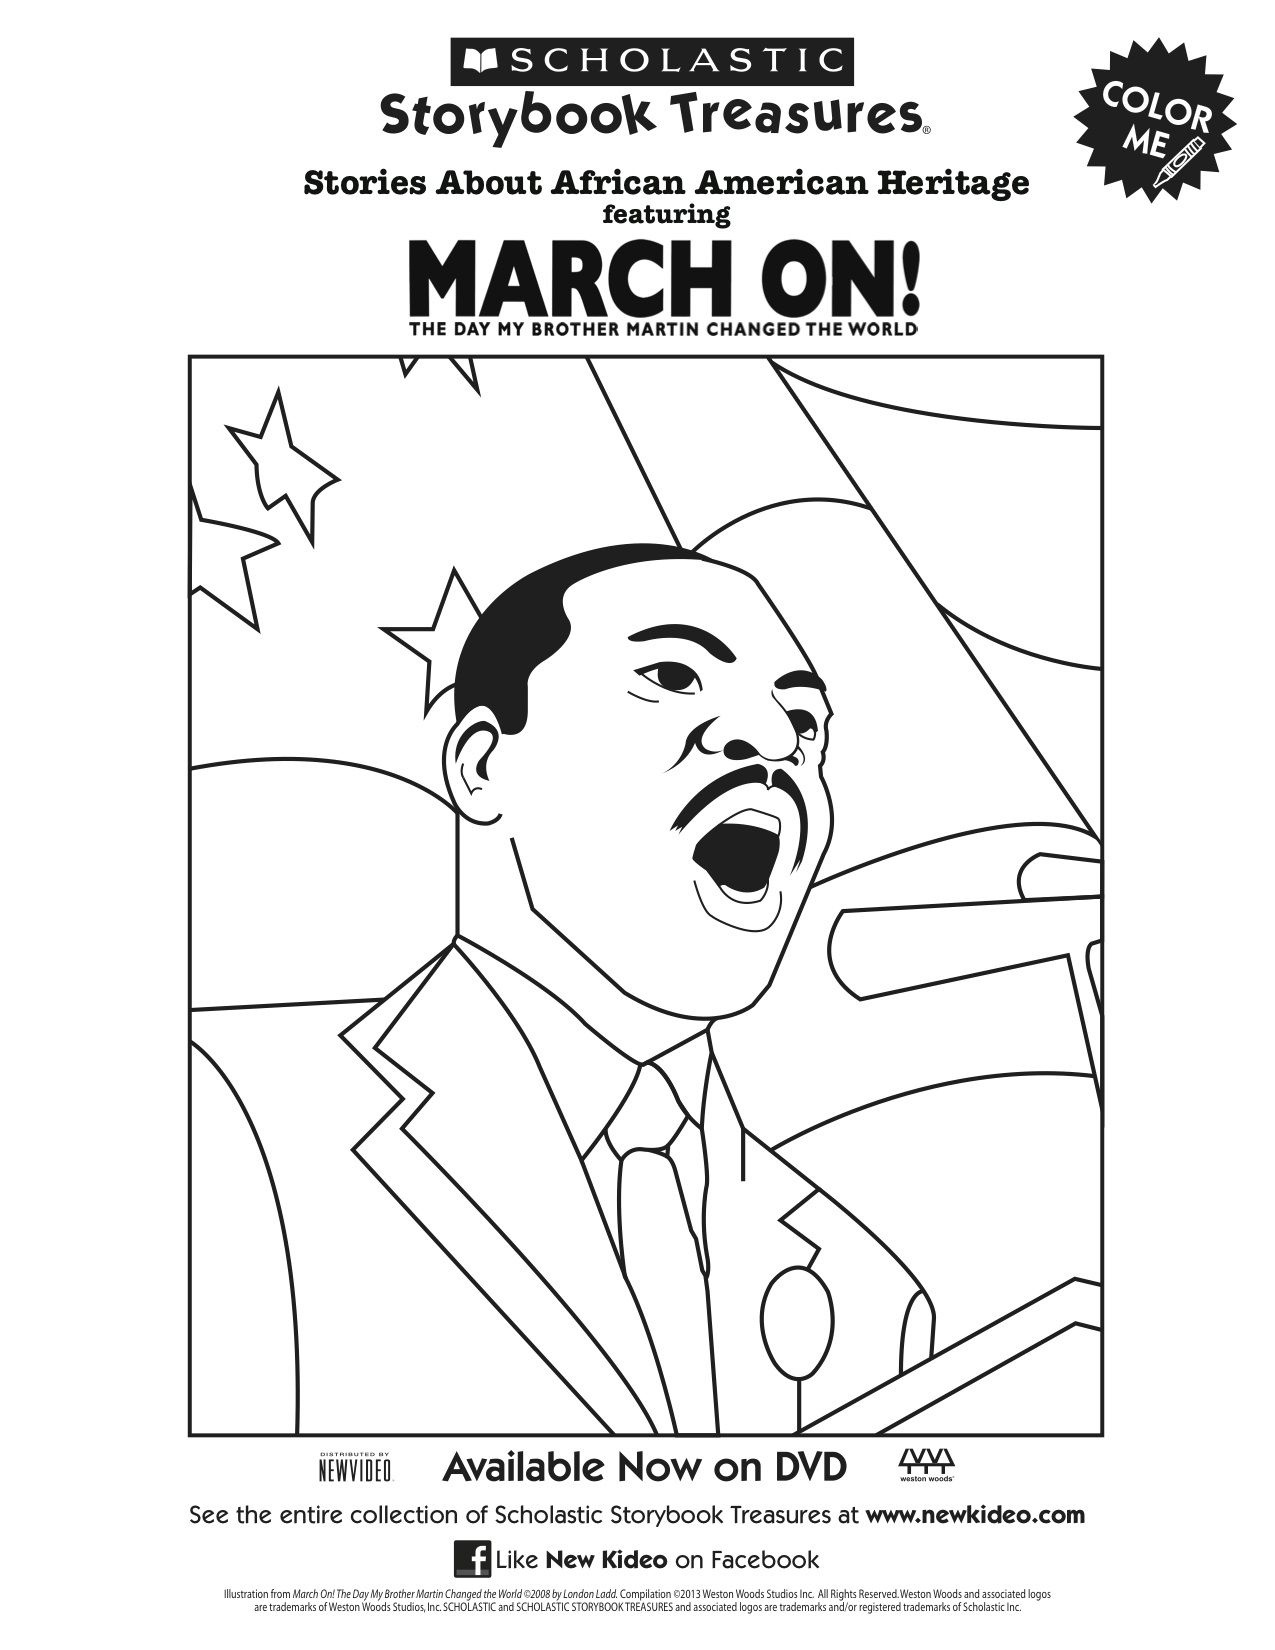 Martin Luther King Jr. March On Coloring Page | Printable Coloring - Martin Luther King Free Printable Coloring Pages